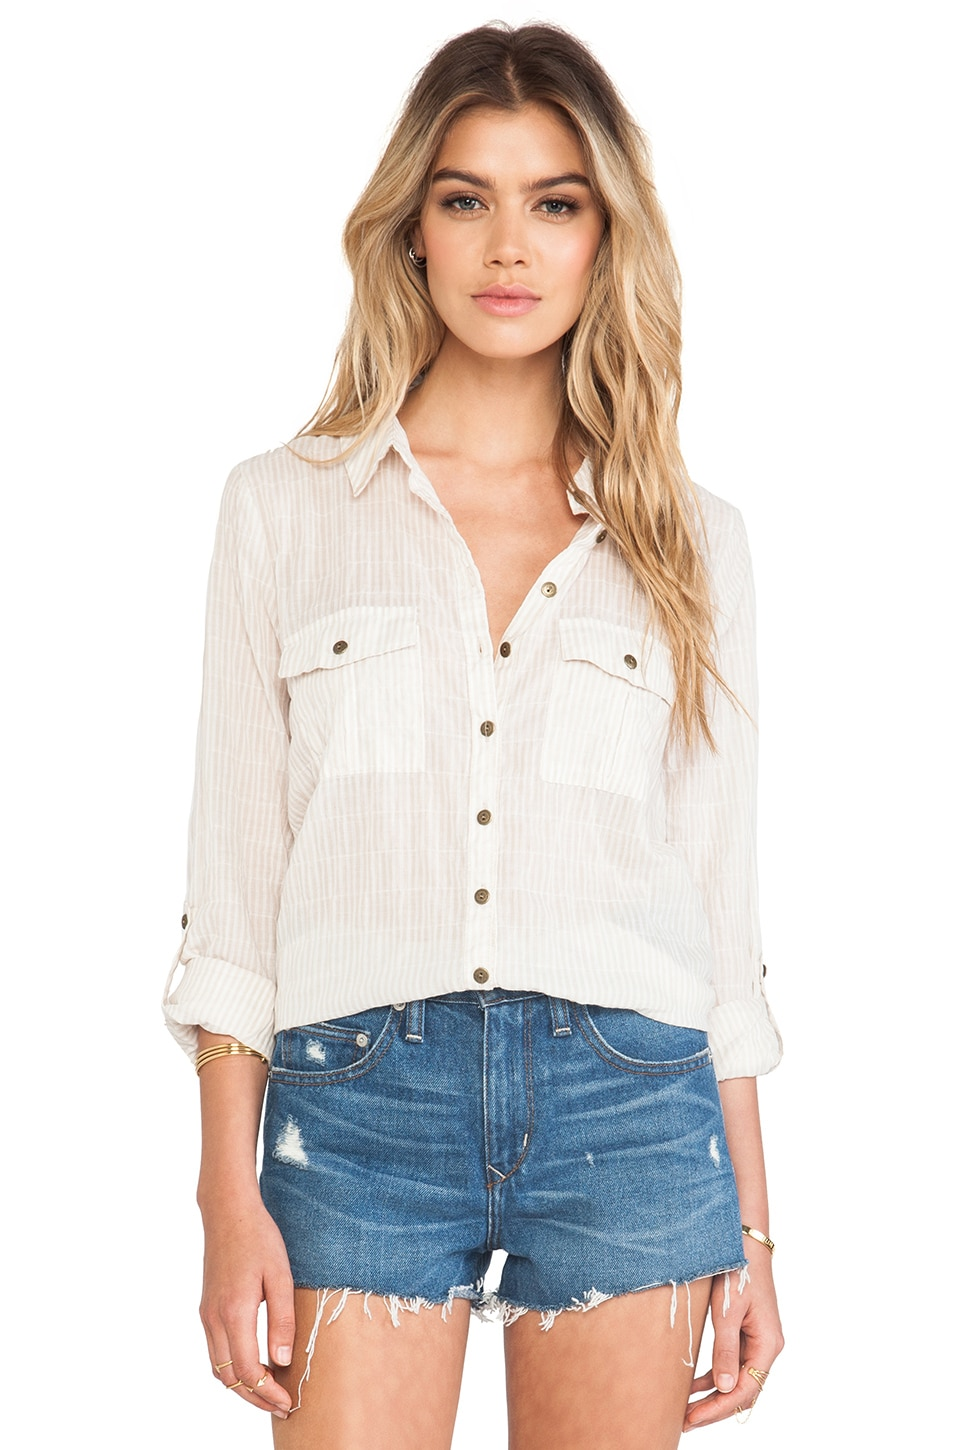 Free People Party in the Back Top in Stone Combo